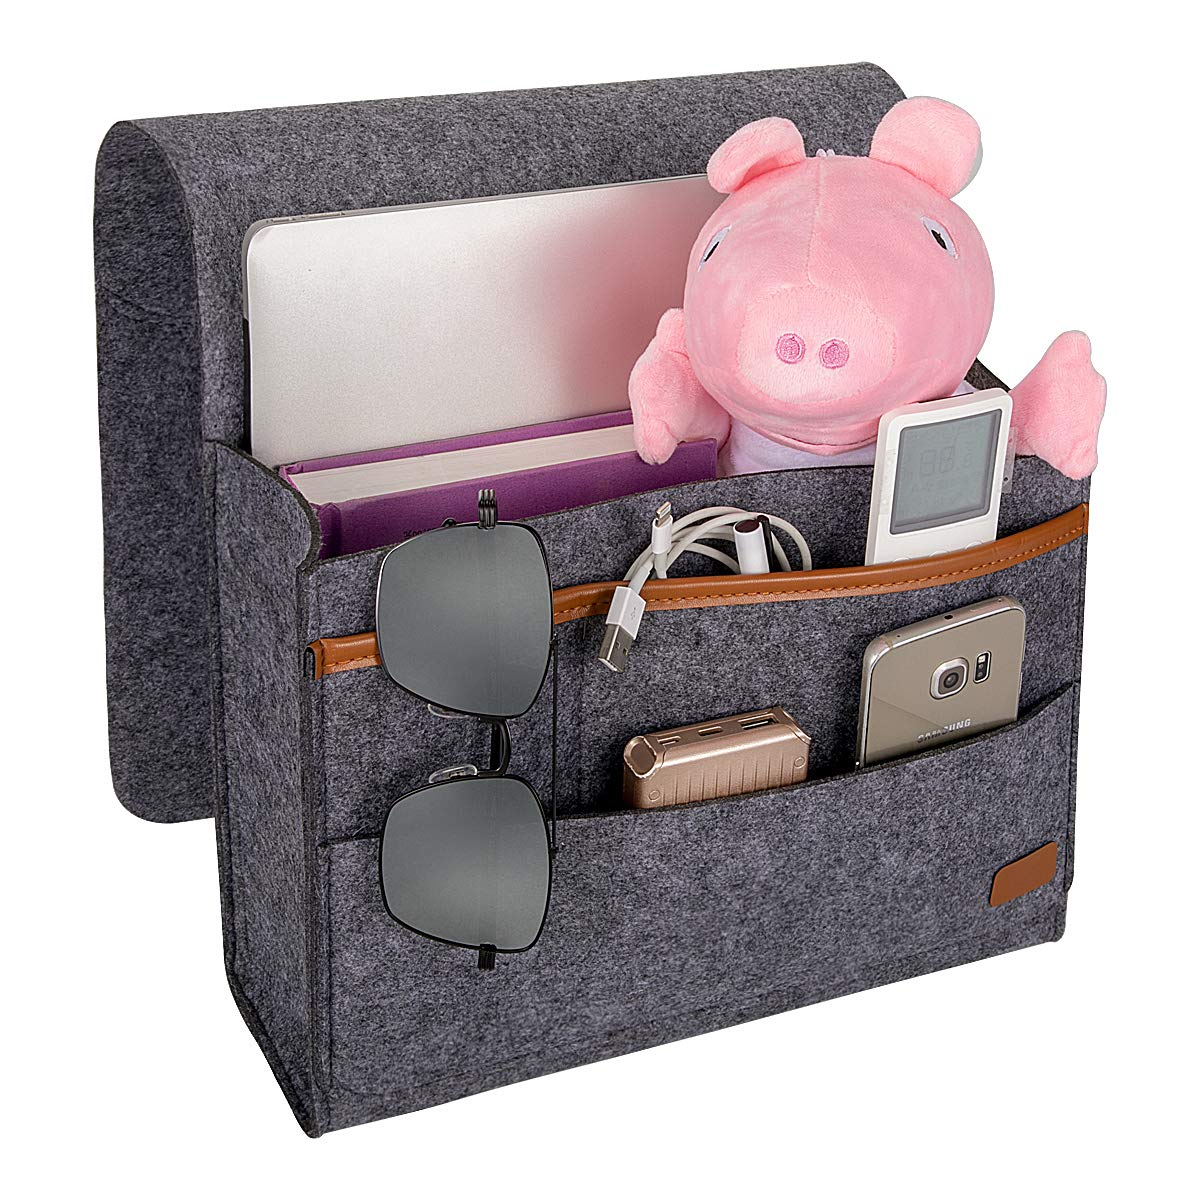 ECZO Bedside Caddy, Bed Caddy Storage Organizer Home Sofa Desk Felt Bedside Pocket with 3 Small Pockets for Organizing Tablet Pad Magazine Books Phone Chargers and More Gadget (Dark Grey